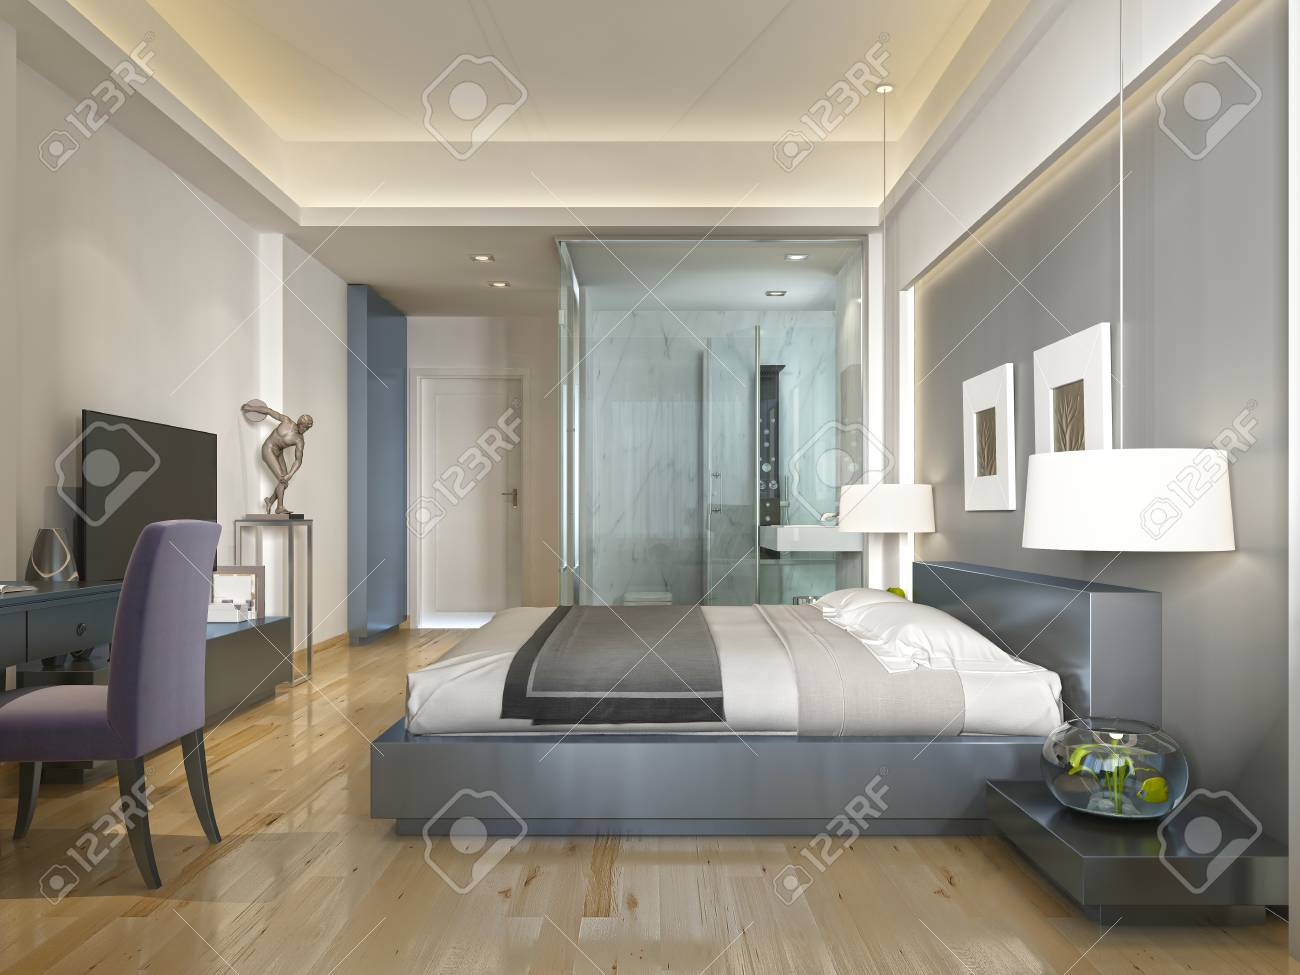 Decoration Chambre Hotel Modern Hotel Room With Large Bed Contemporary Style With Elements